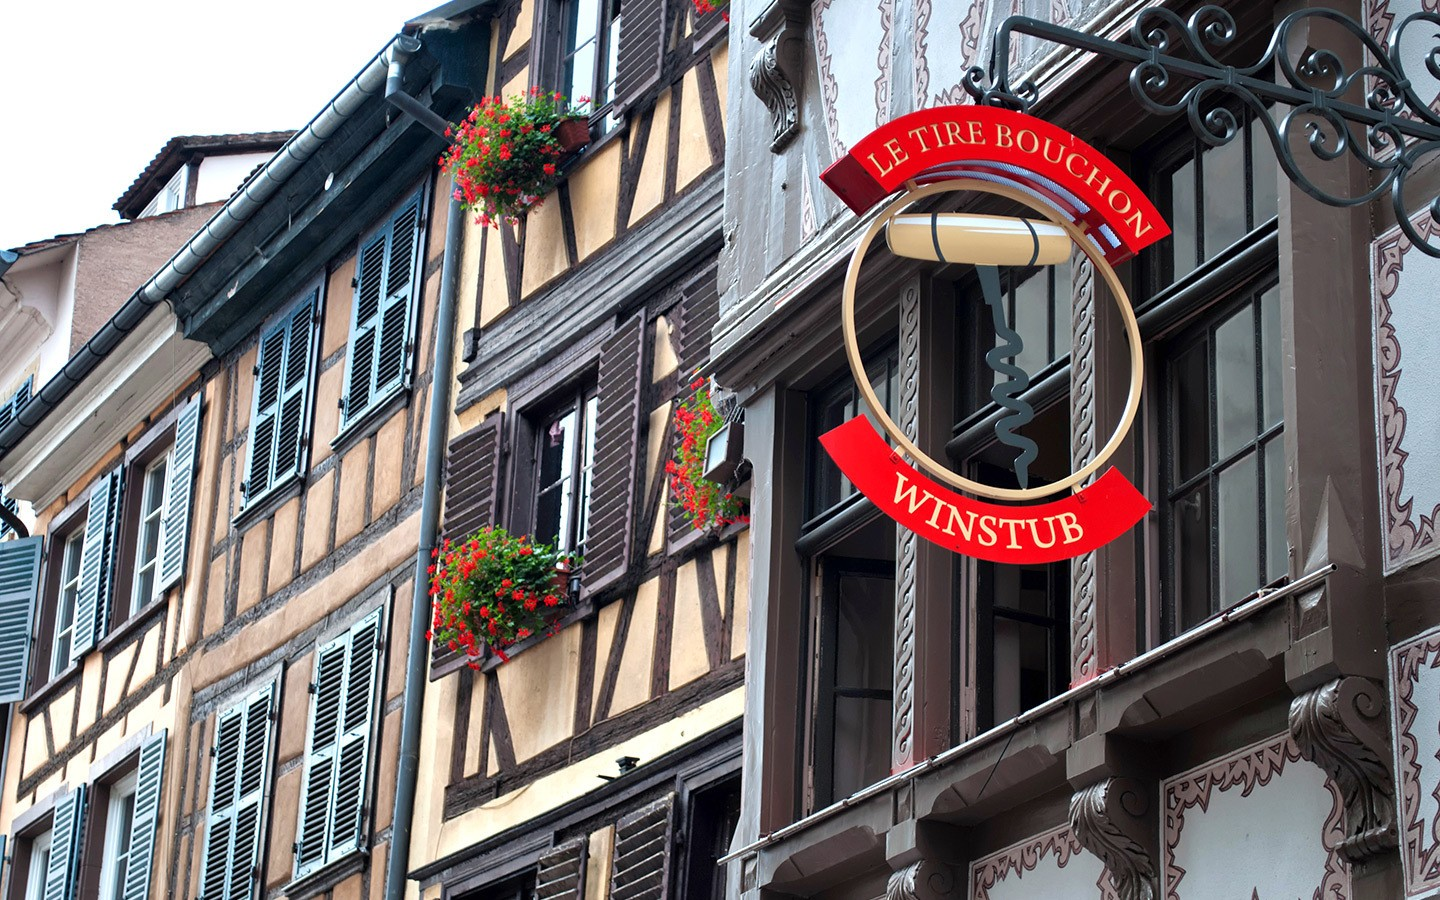 A Winstub in the Alsace, France